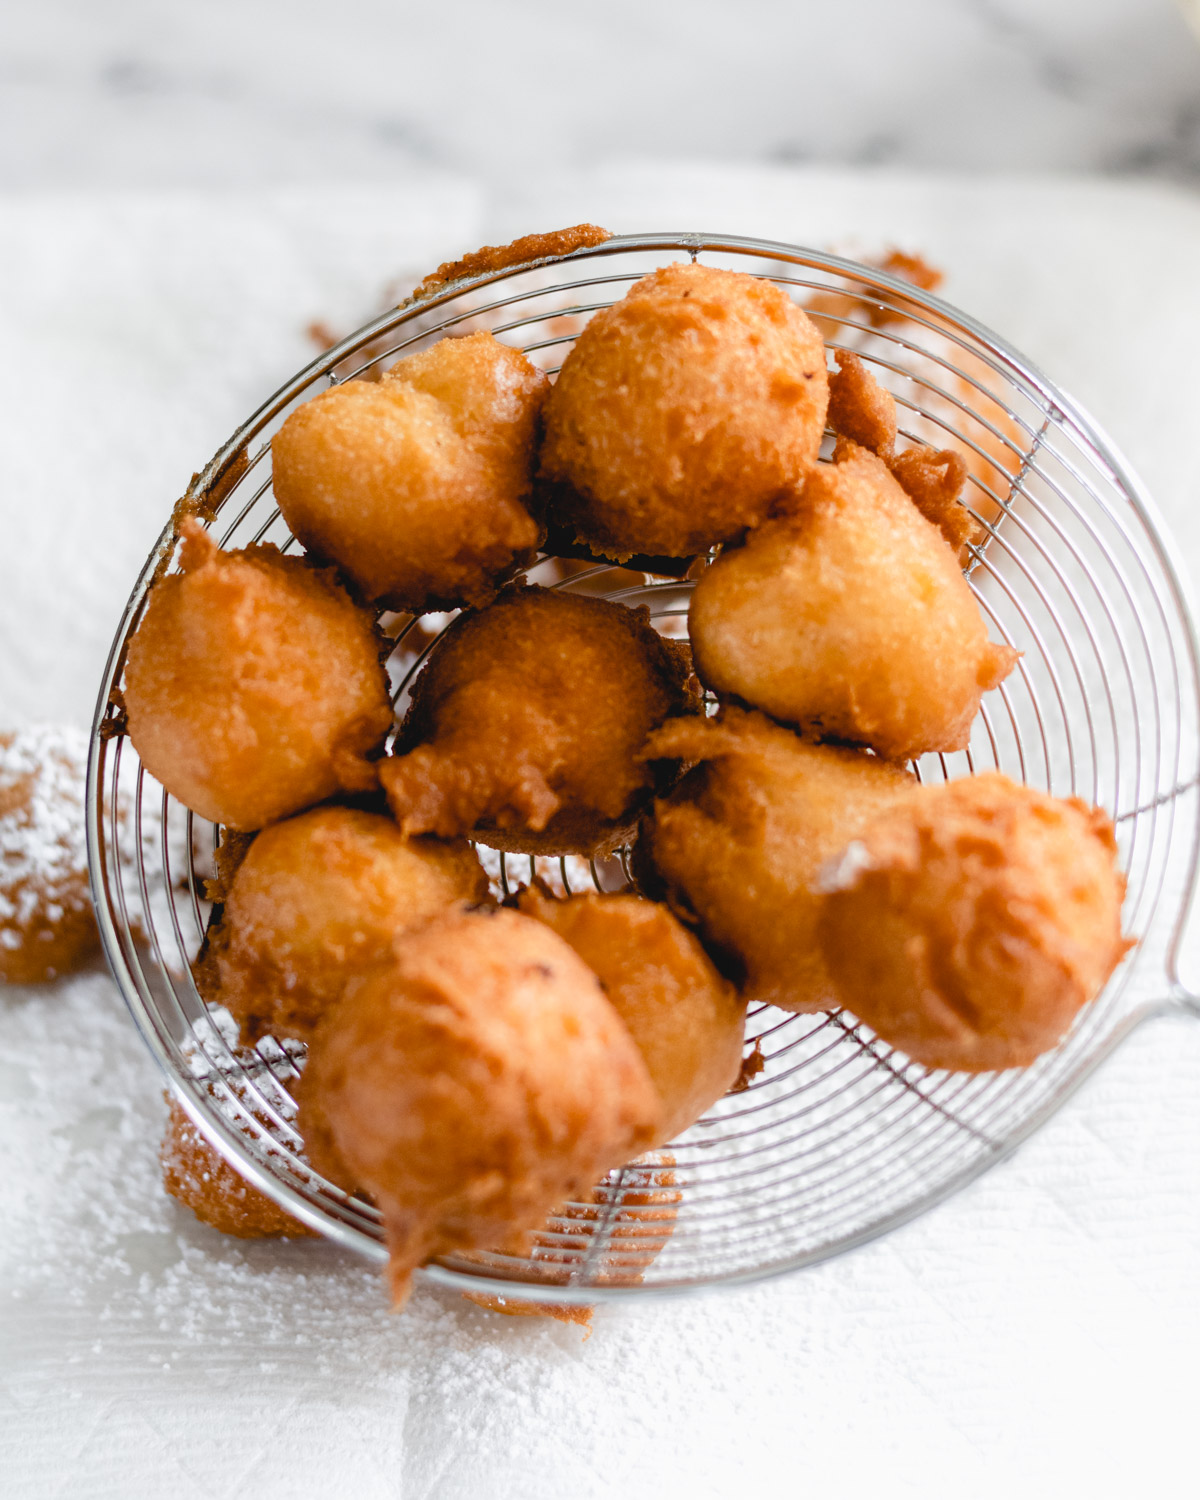 Cooked bites in a stainless slotted scoop, ready to cool on paper towel.